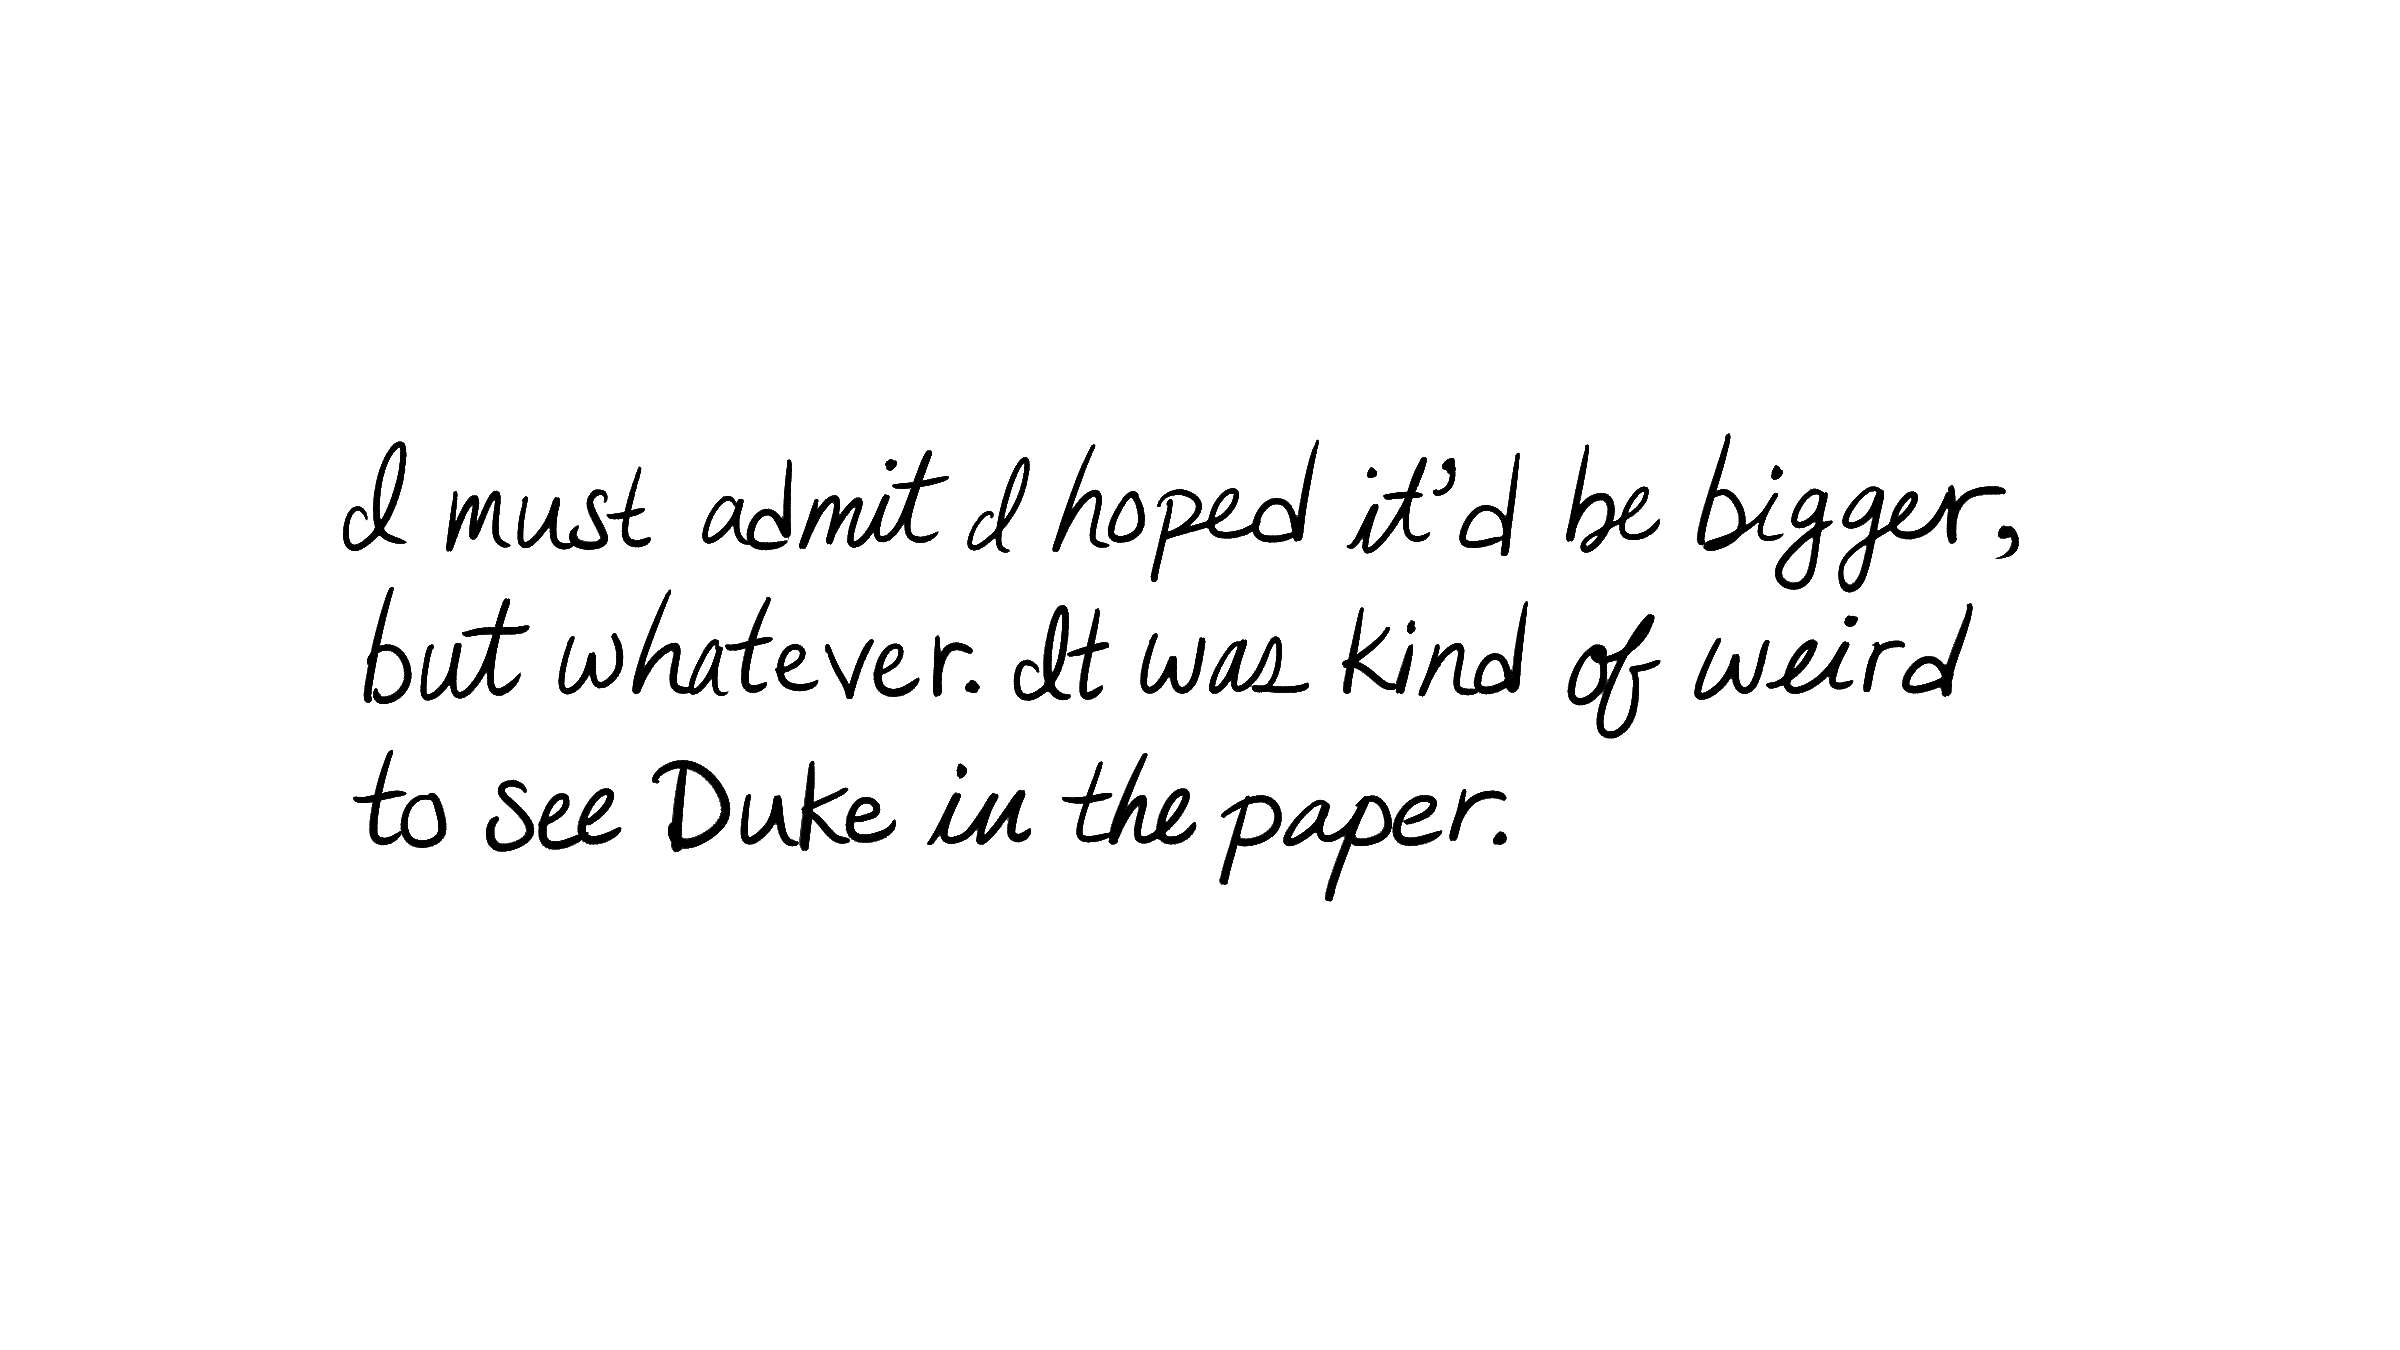 I must admit I hoped it'd be bigger, but whatever. It was kind of weird to see Duke in the paper.